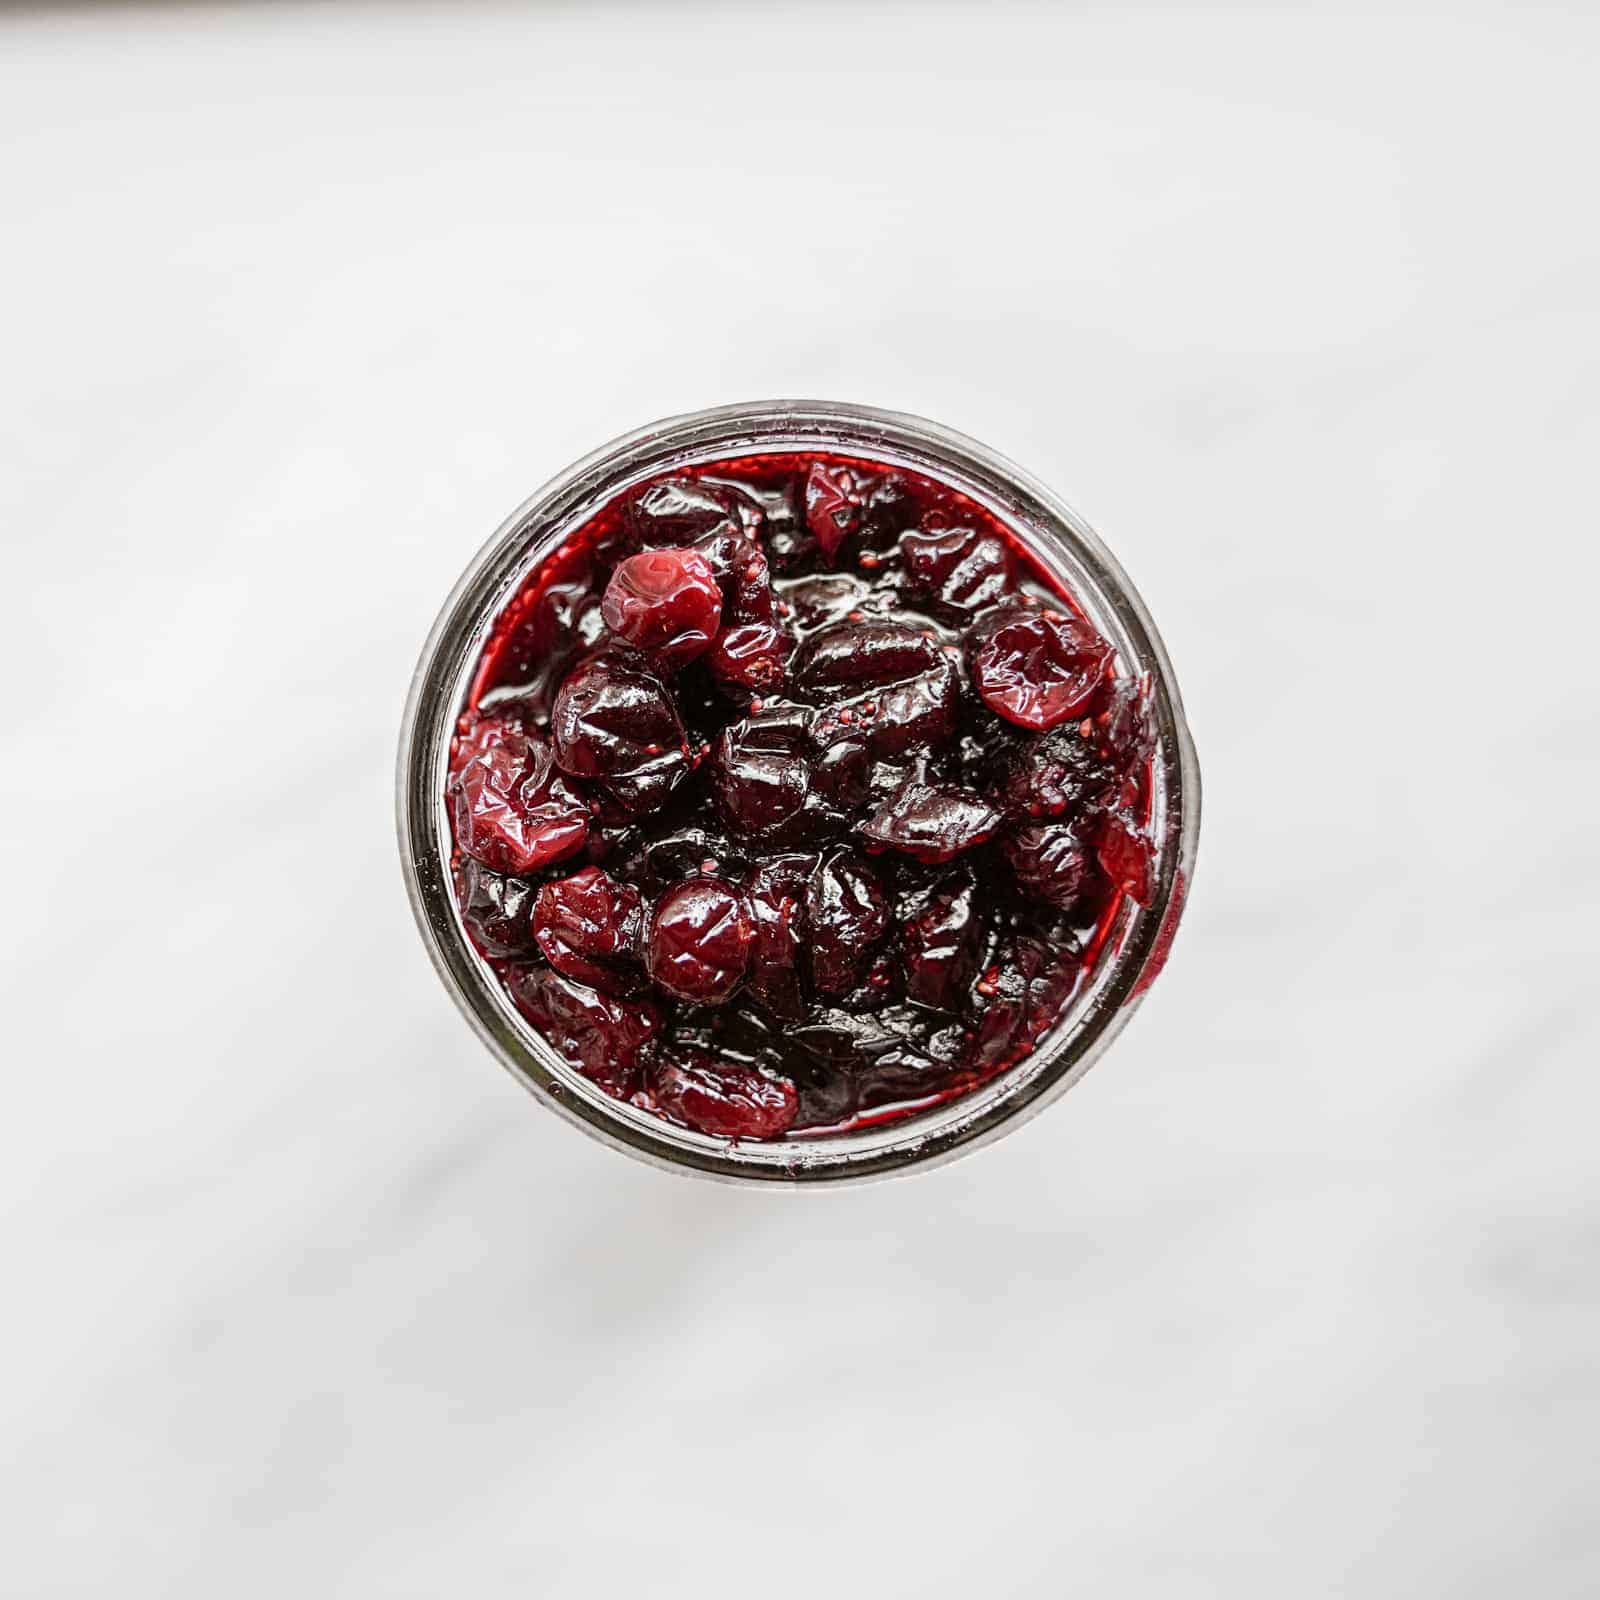 Top view of jar on counter with vegan cranberry sauce in it